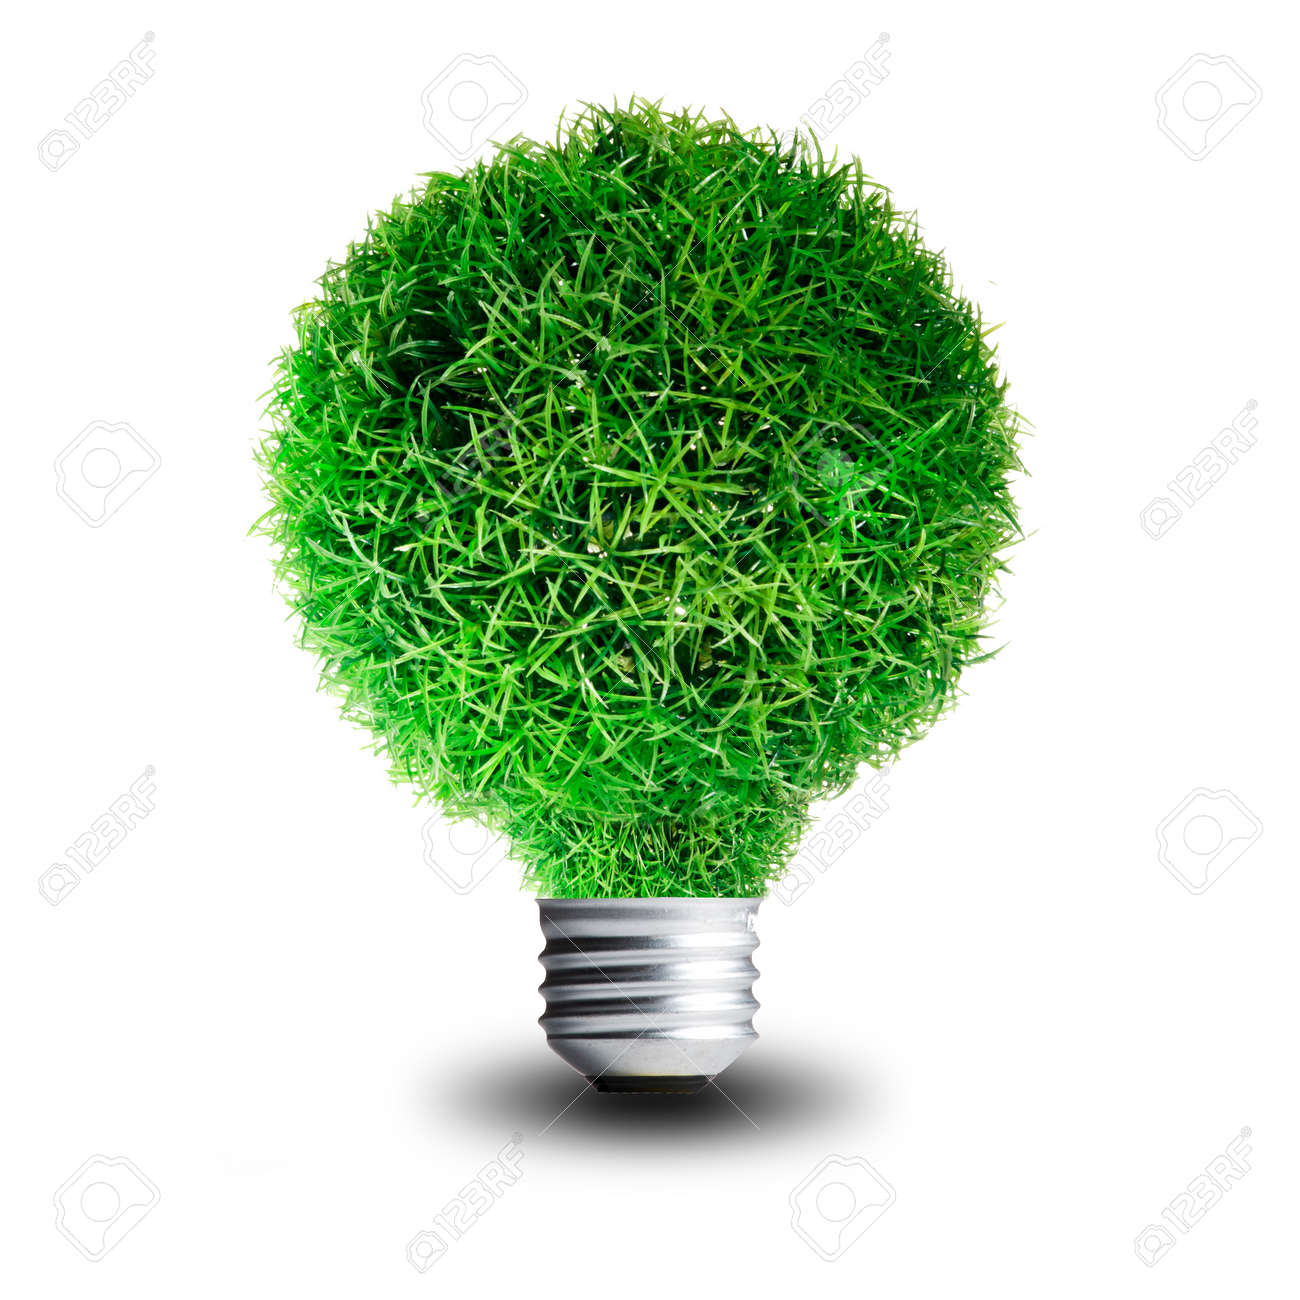 Elegant Green Grass Growing On Light Bulb Concept For Eco Friendly Stock Photo    13733027 Design Inspirations